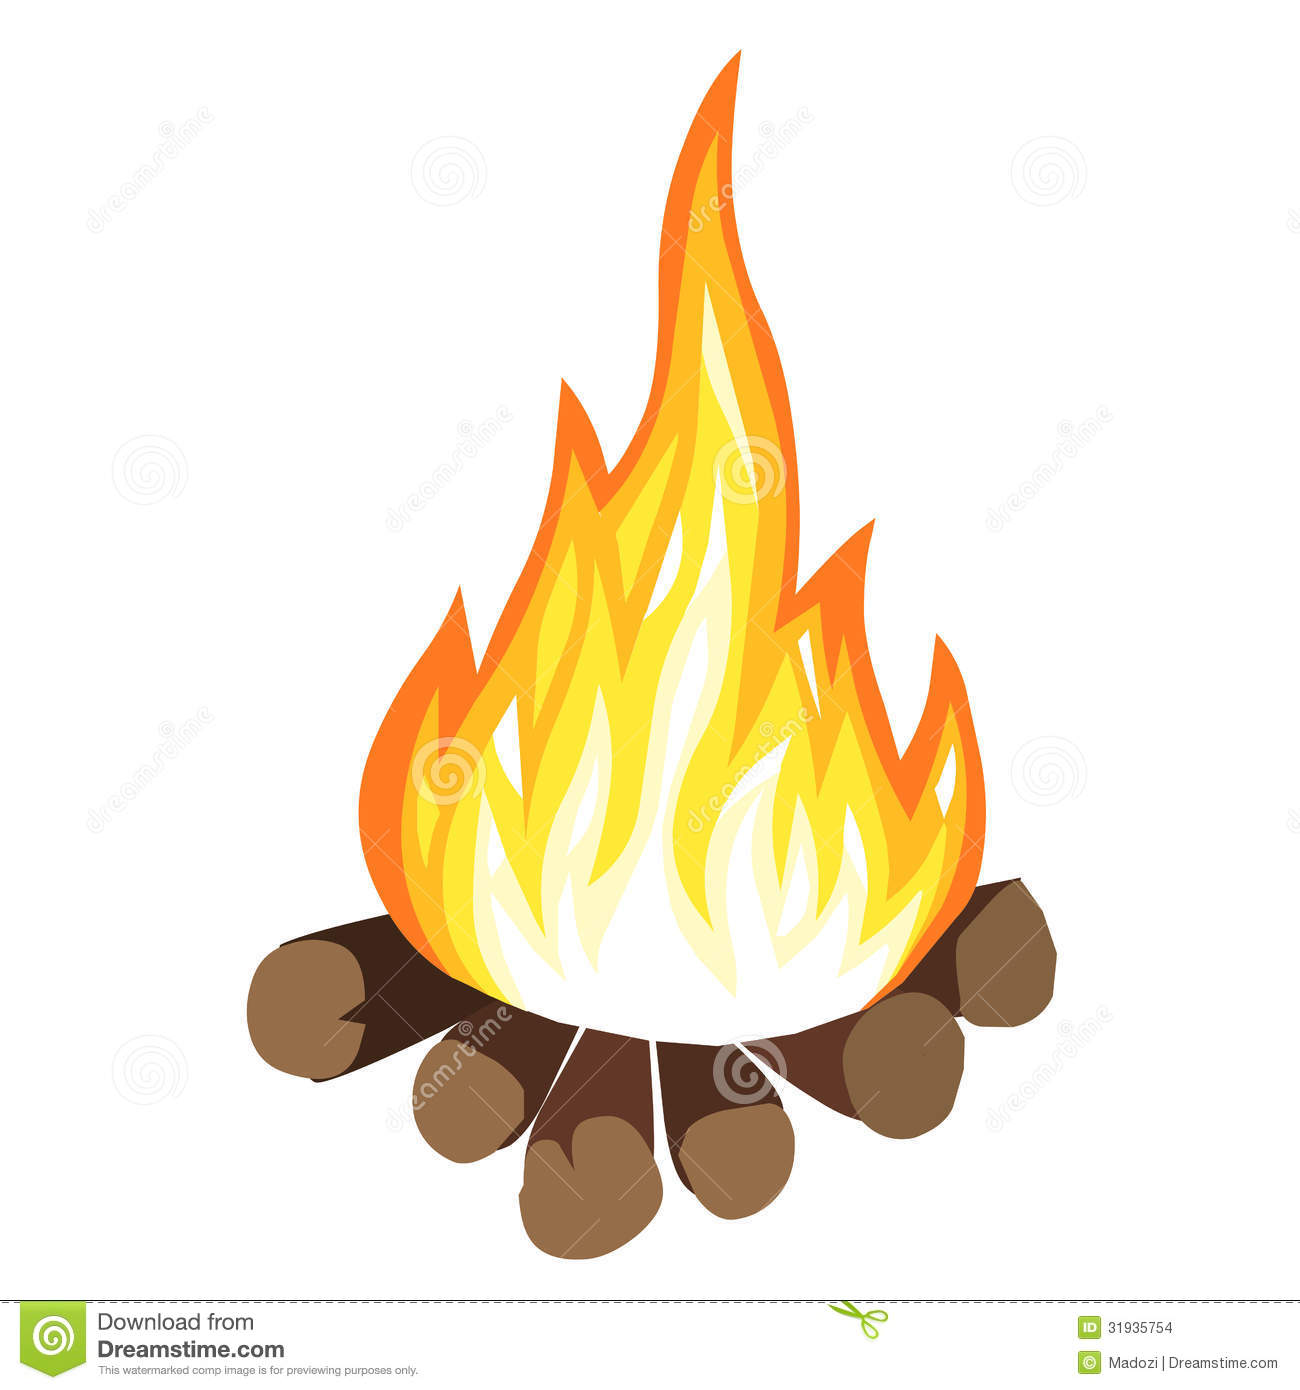 Campfire cartoon clipart image library Campfire Cartoon | Clipart Panda - Free Clipart Images image library